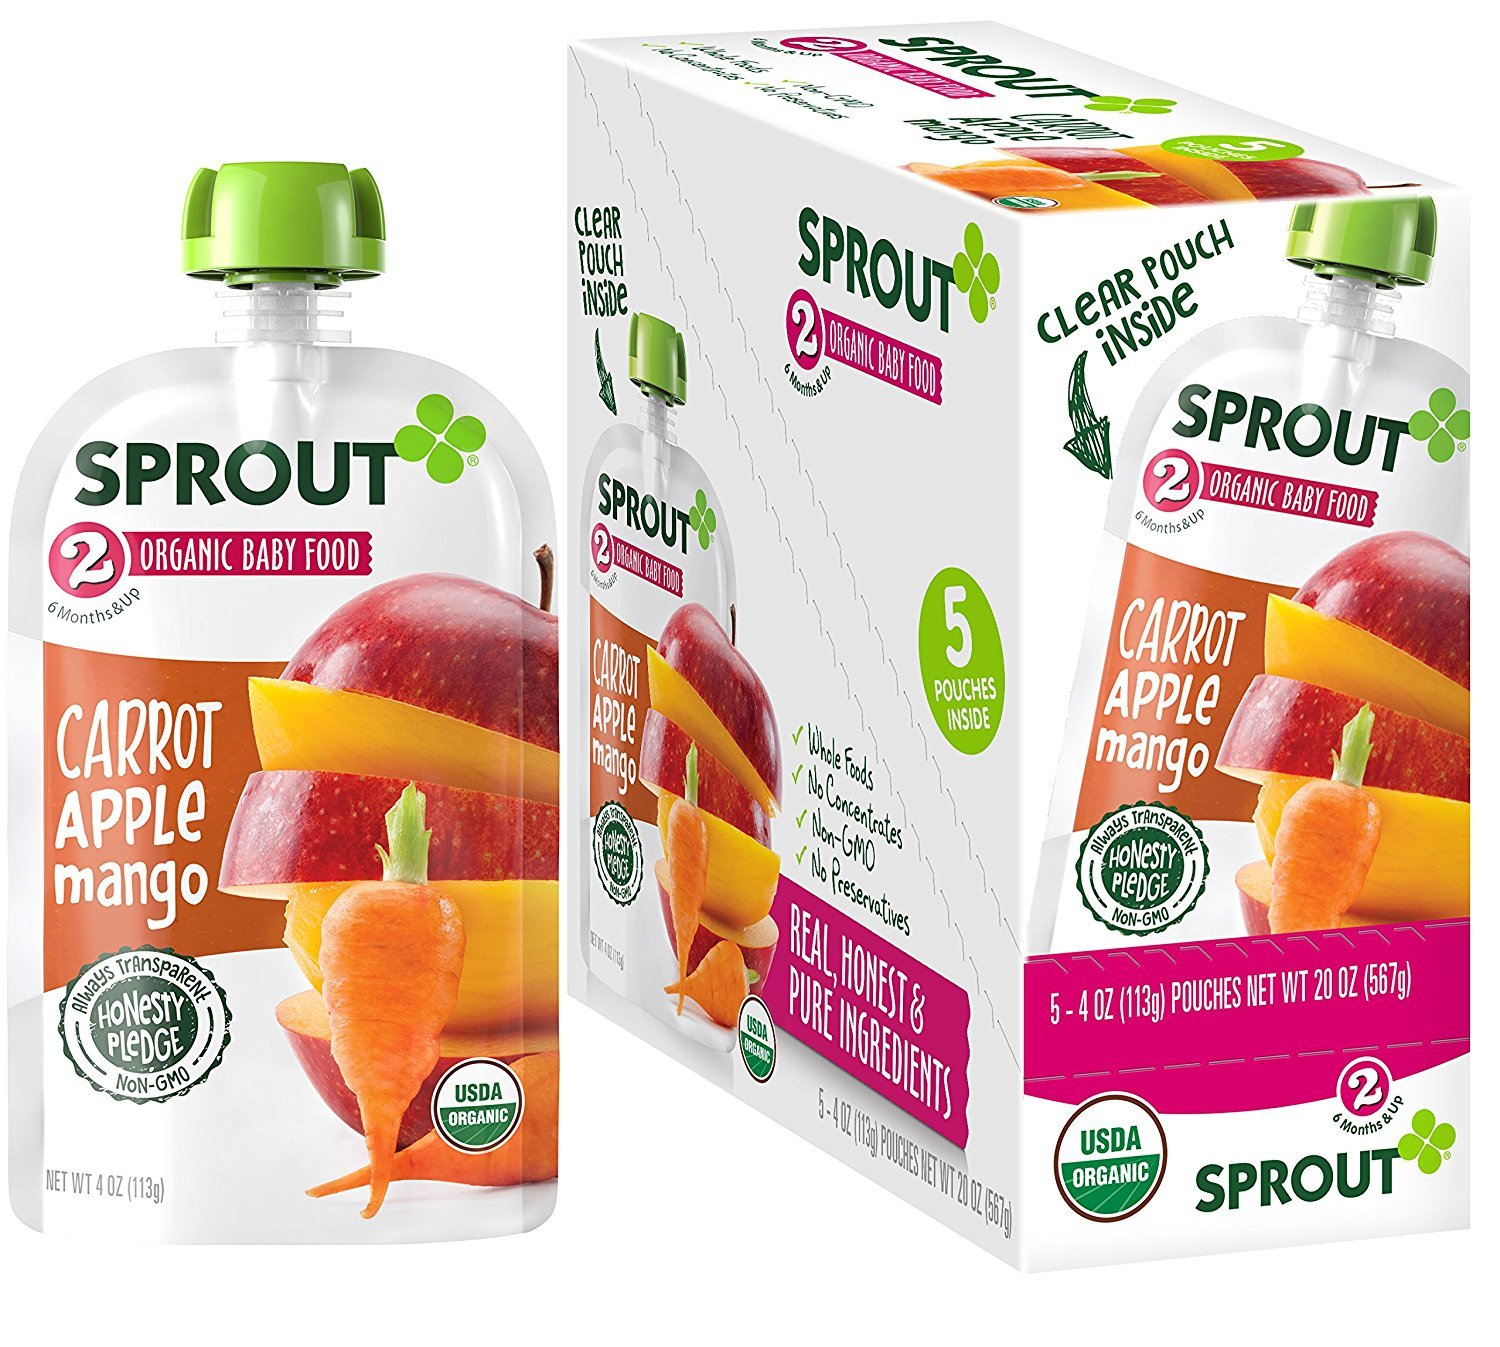 Sprout Organic Baby Food Pouches Stage 2 Sprout Baby Food, Carrot Apple Mango, 4 Ounce (Pack of 5); USDA Organic, Non-GMO, Made with Whole Foods, No Preservatives, Nothing Artificial